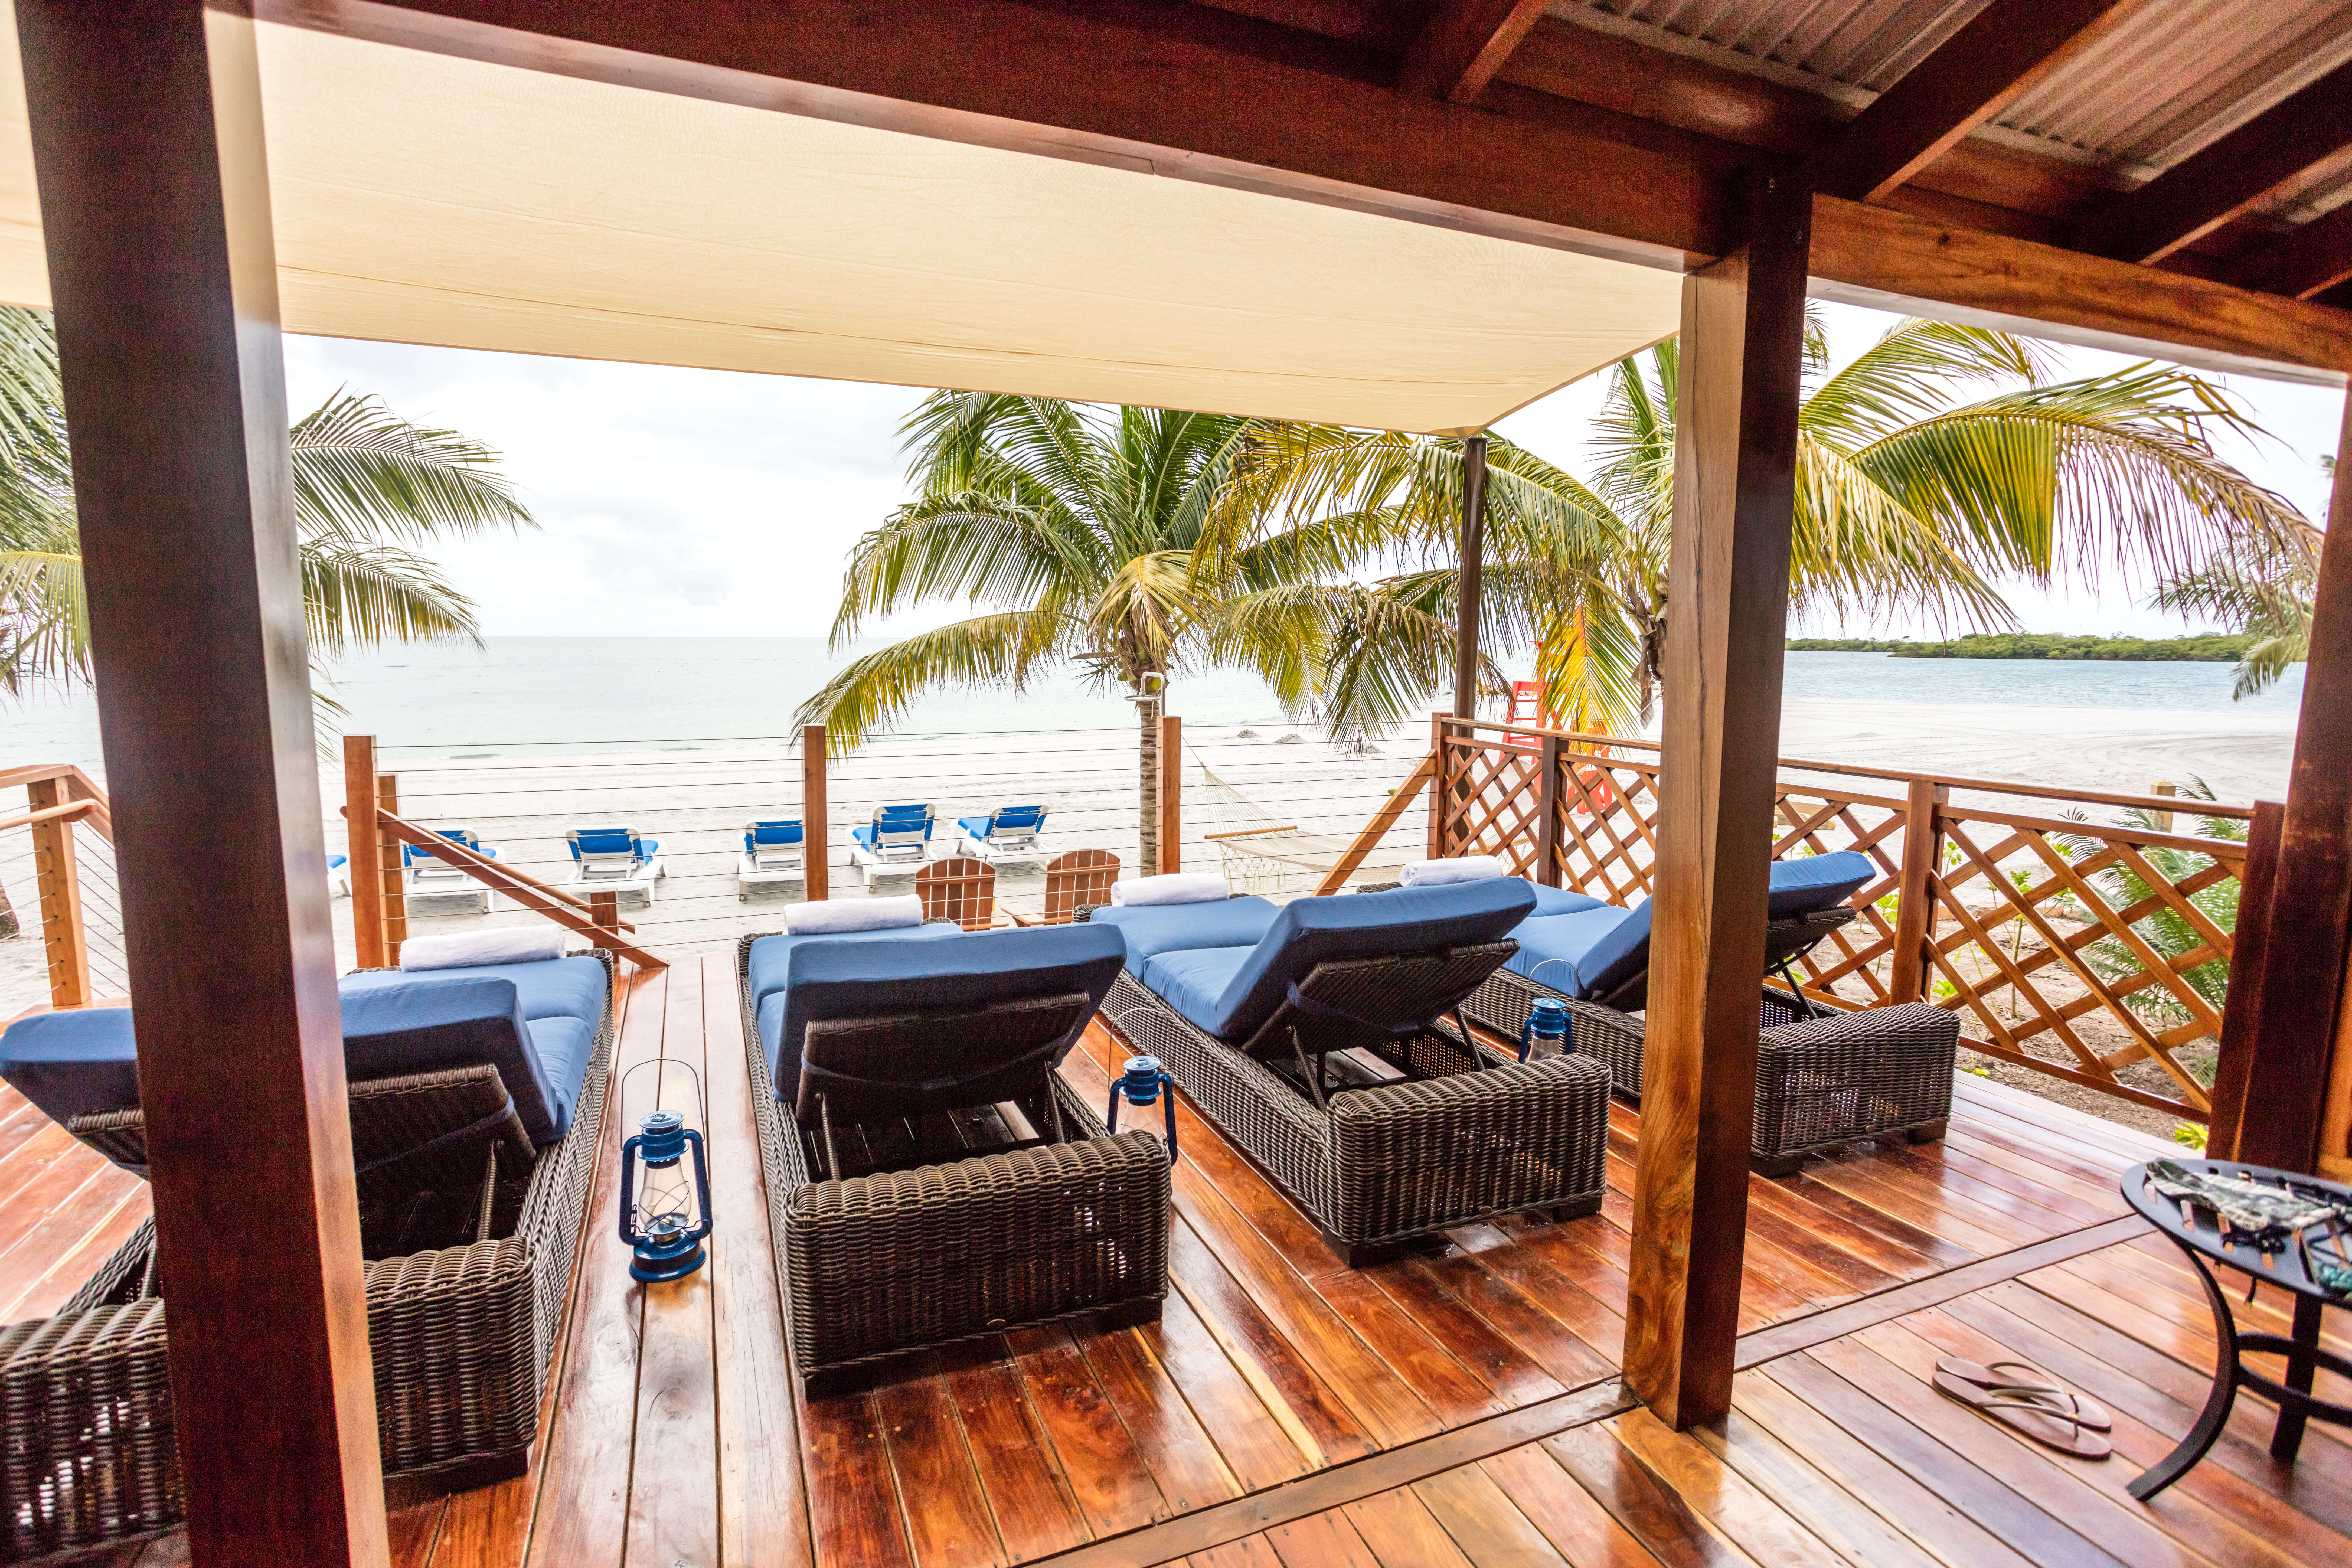 New, Highly-Anticipated Destination Opens in Belize: Harvest Caye